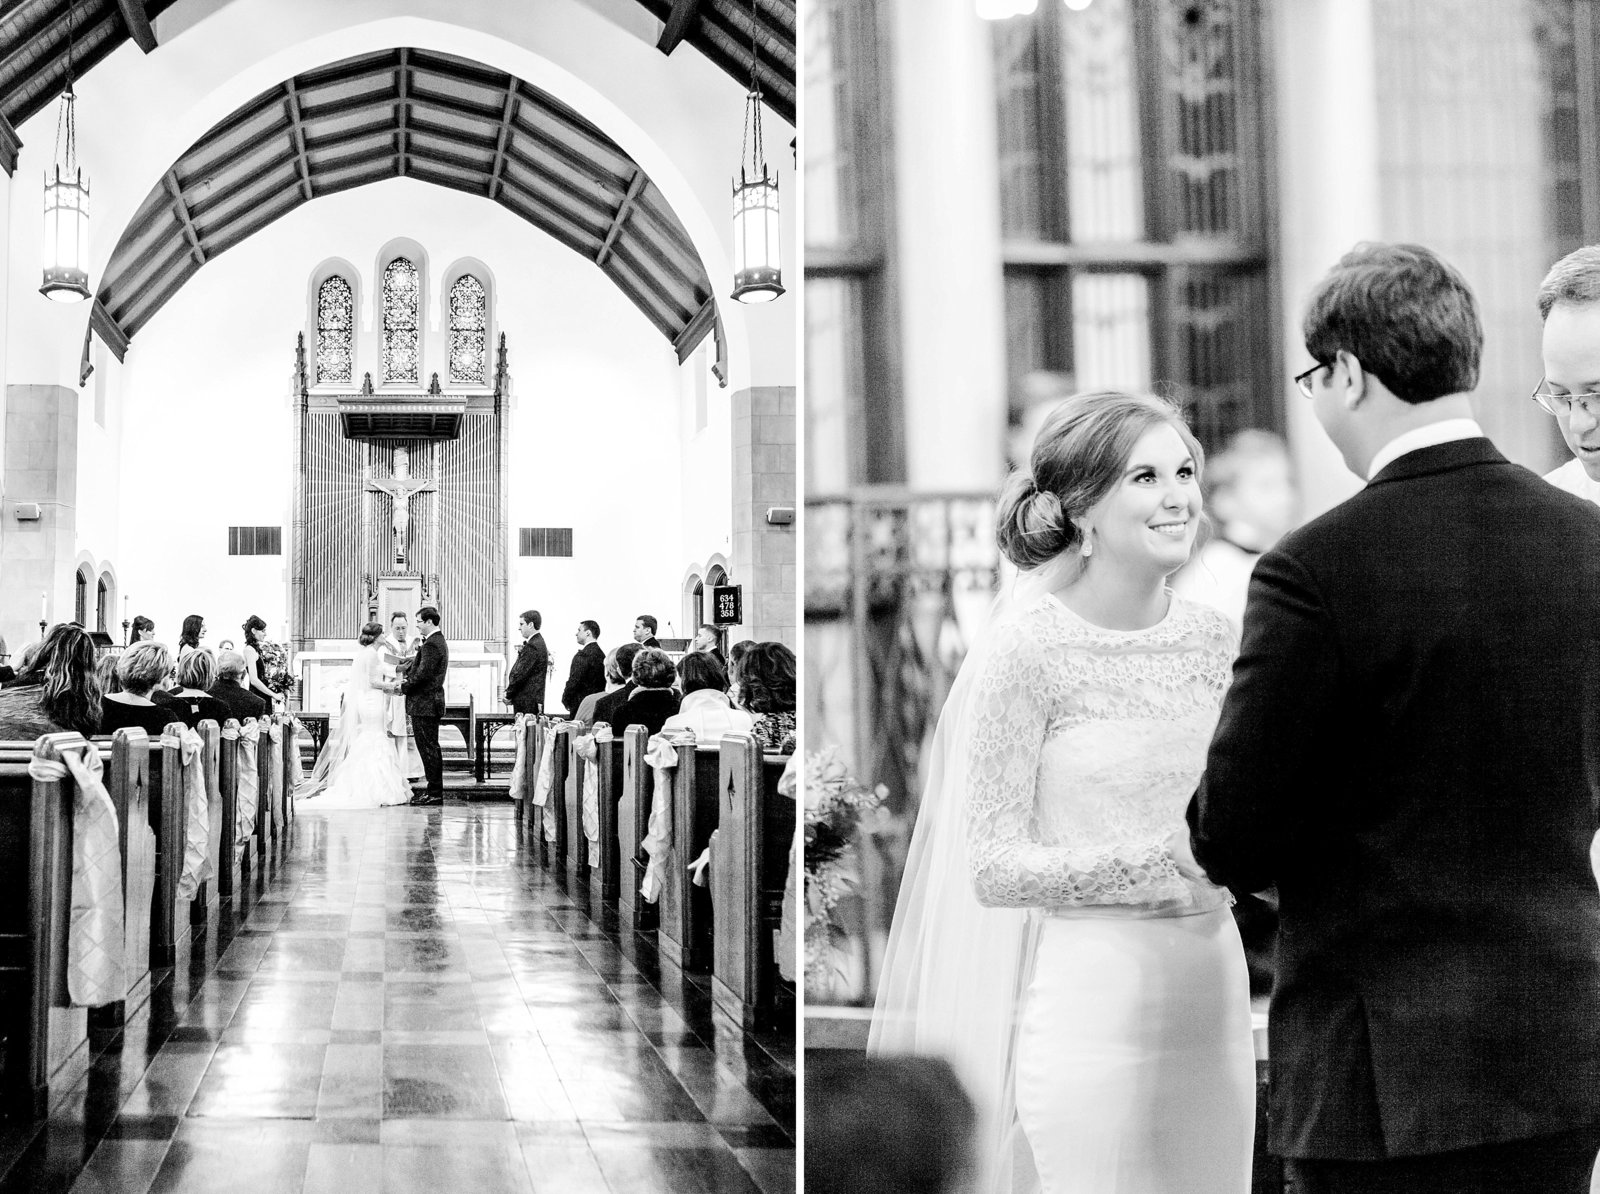 st.louis.wedding.photographer_0282